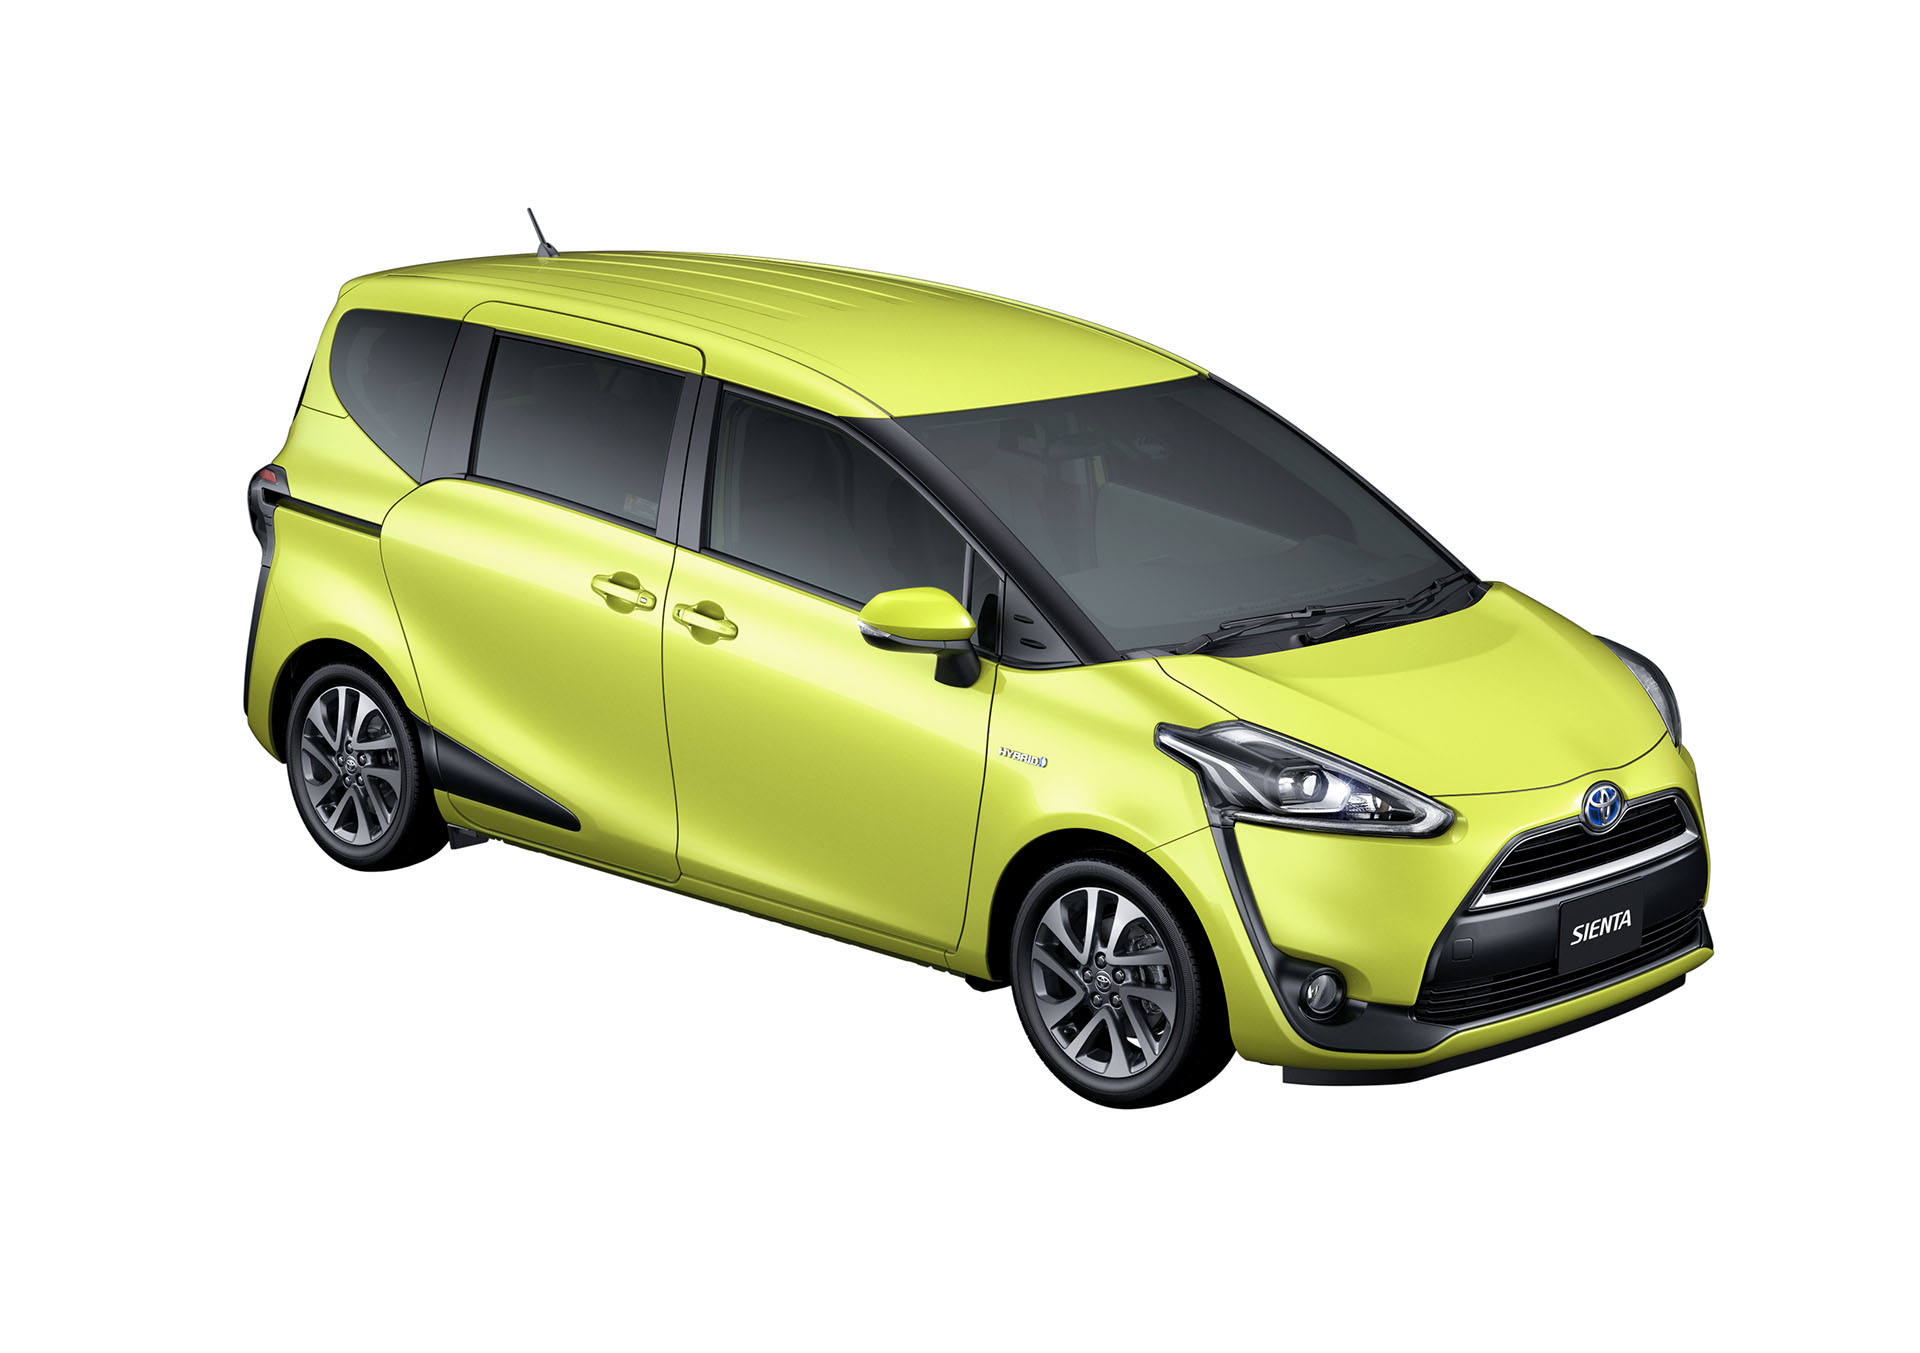 2016 Toyota Sienta front three quarter in air yellow unveiled in Japan